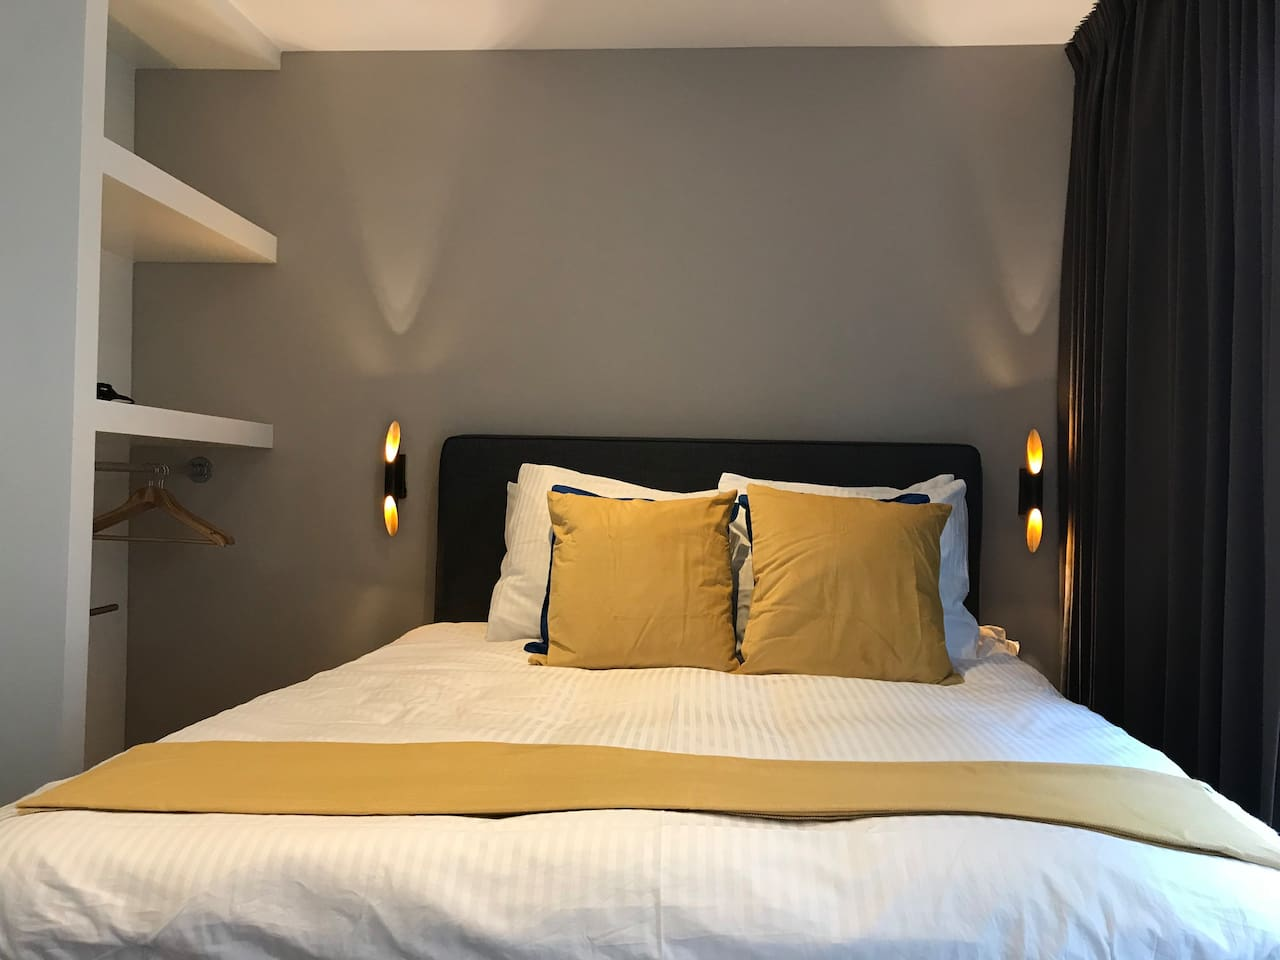 The Milkmaid room is a comfortable private room with Queen-size bed & ensuite bathroom in the city centre of Amsterdam